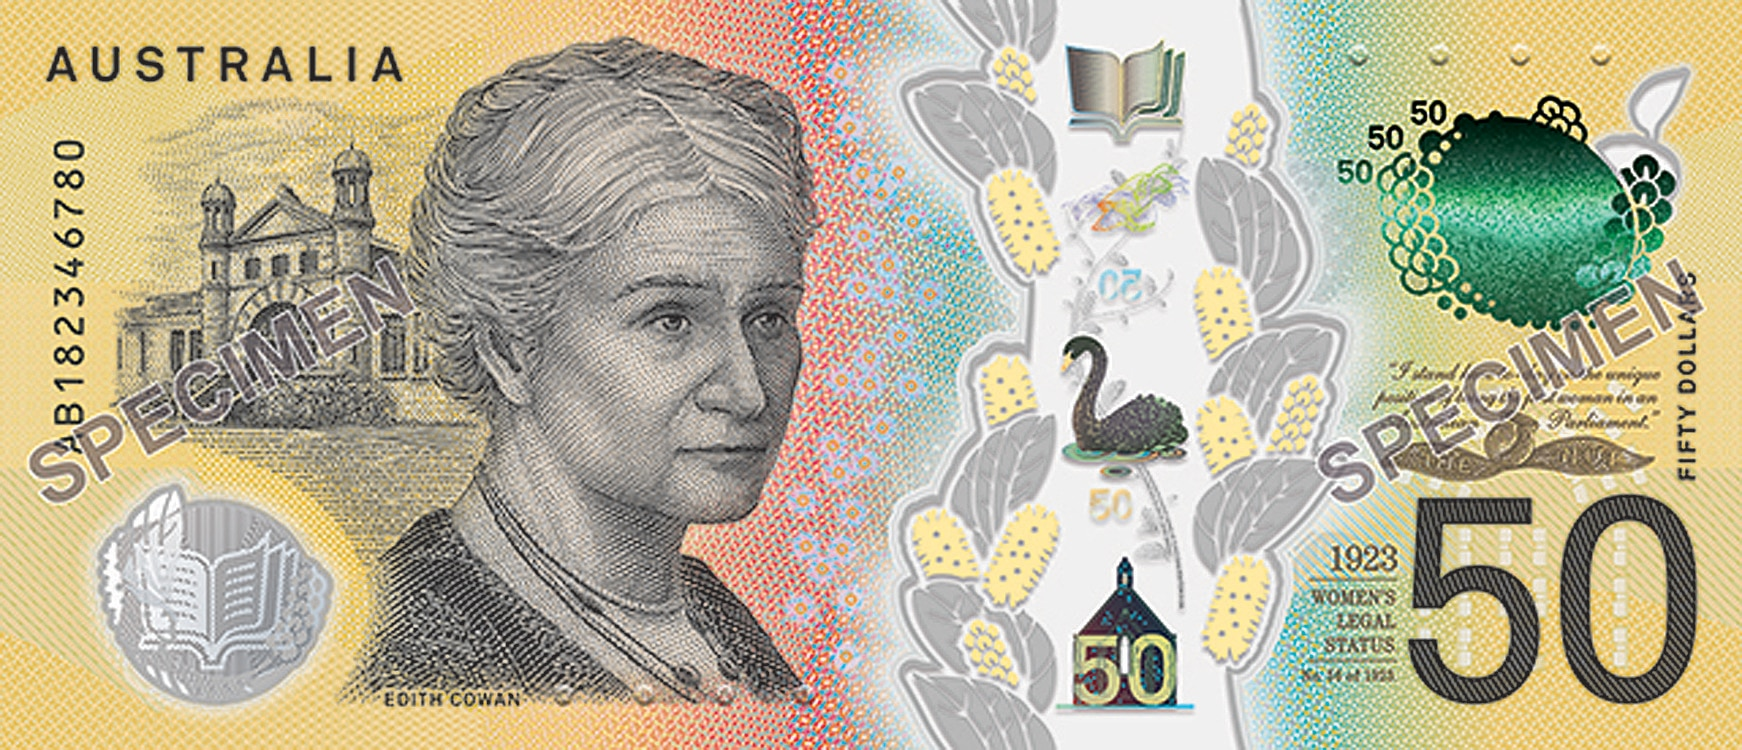 A portrait of Edith Cowan, the first female member of an Australian parliament, on the new $50 bank note.